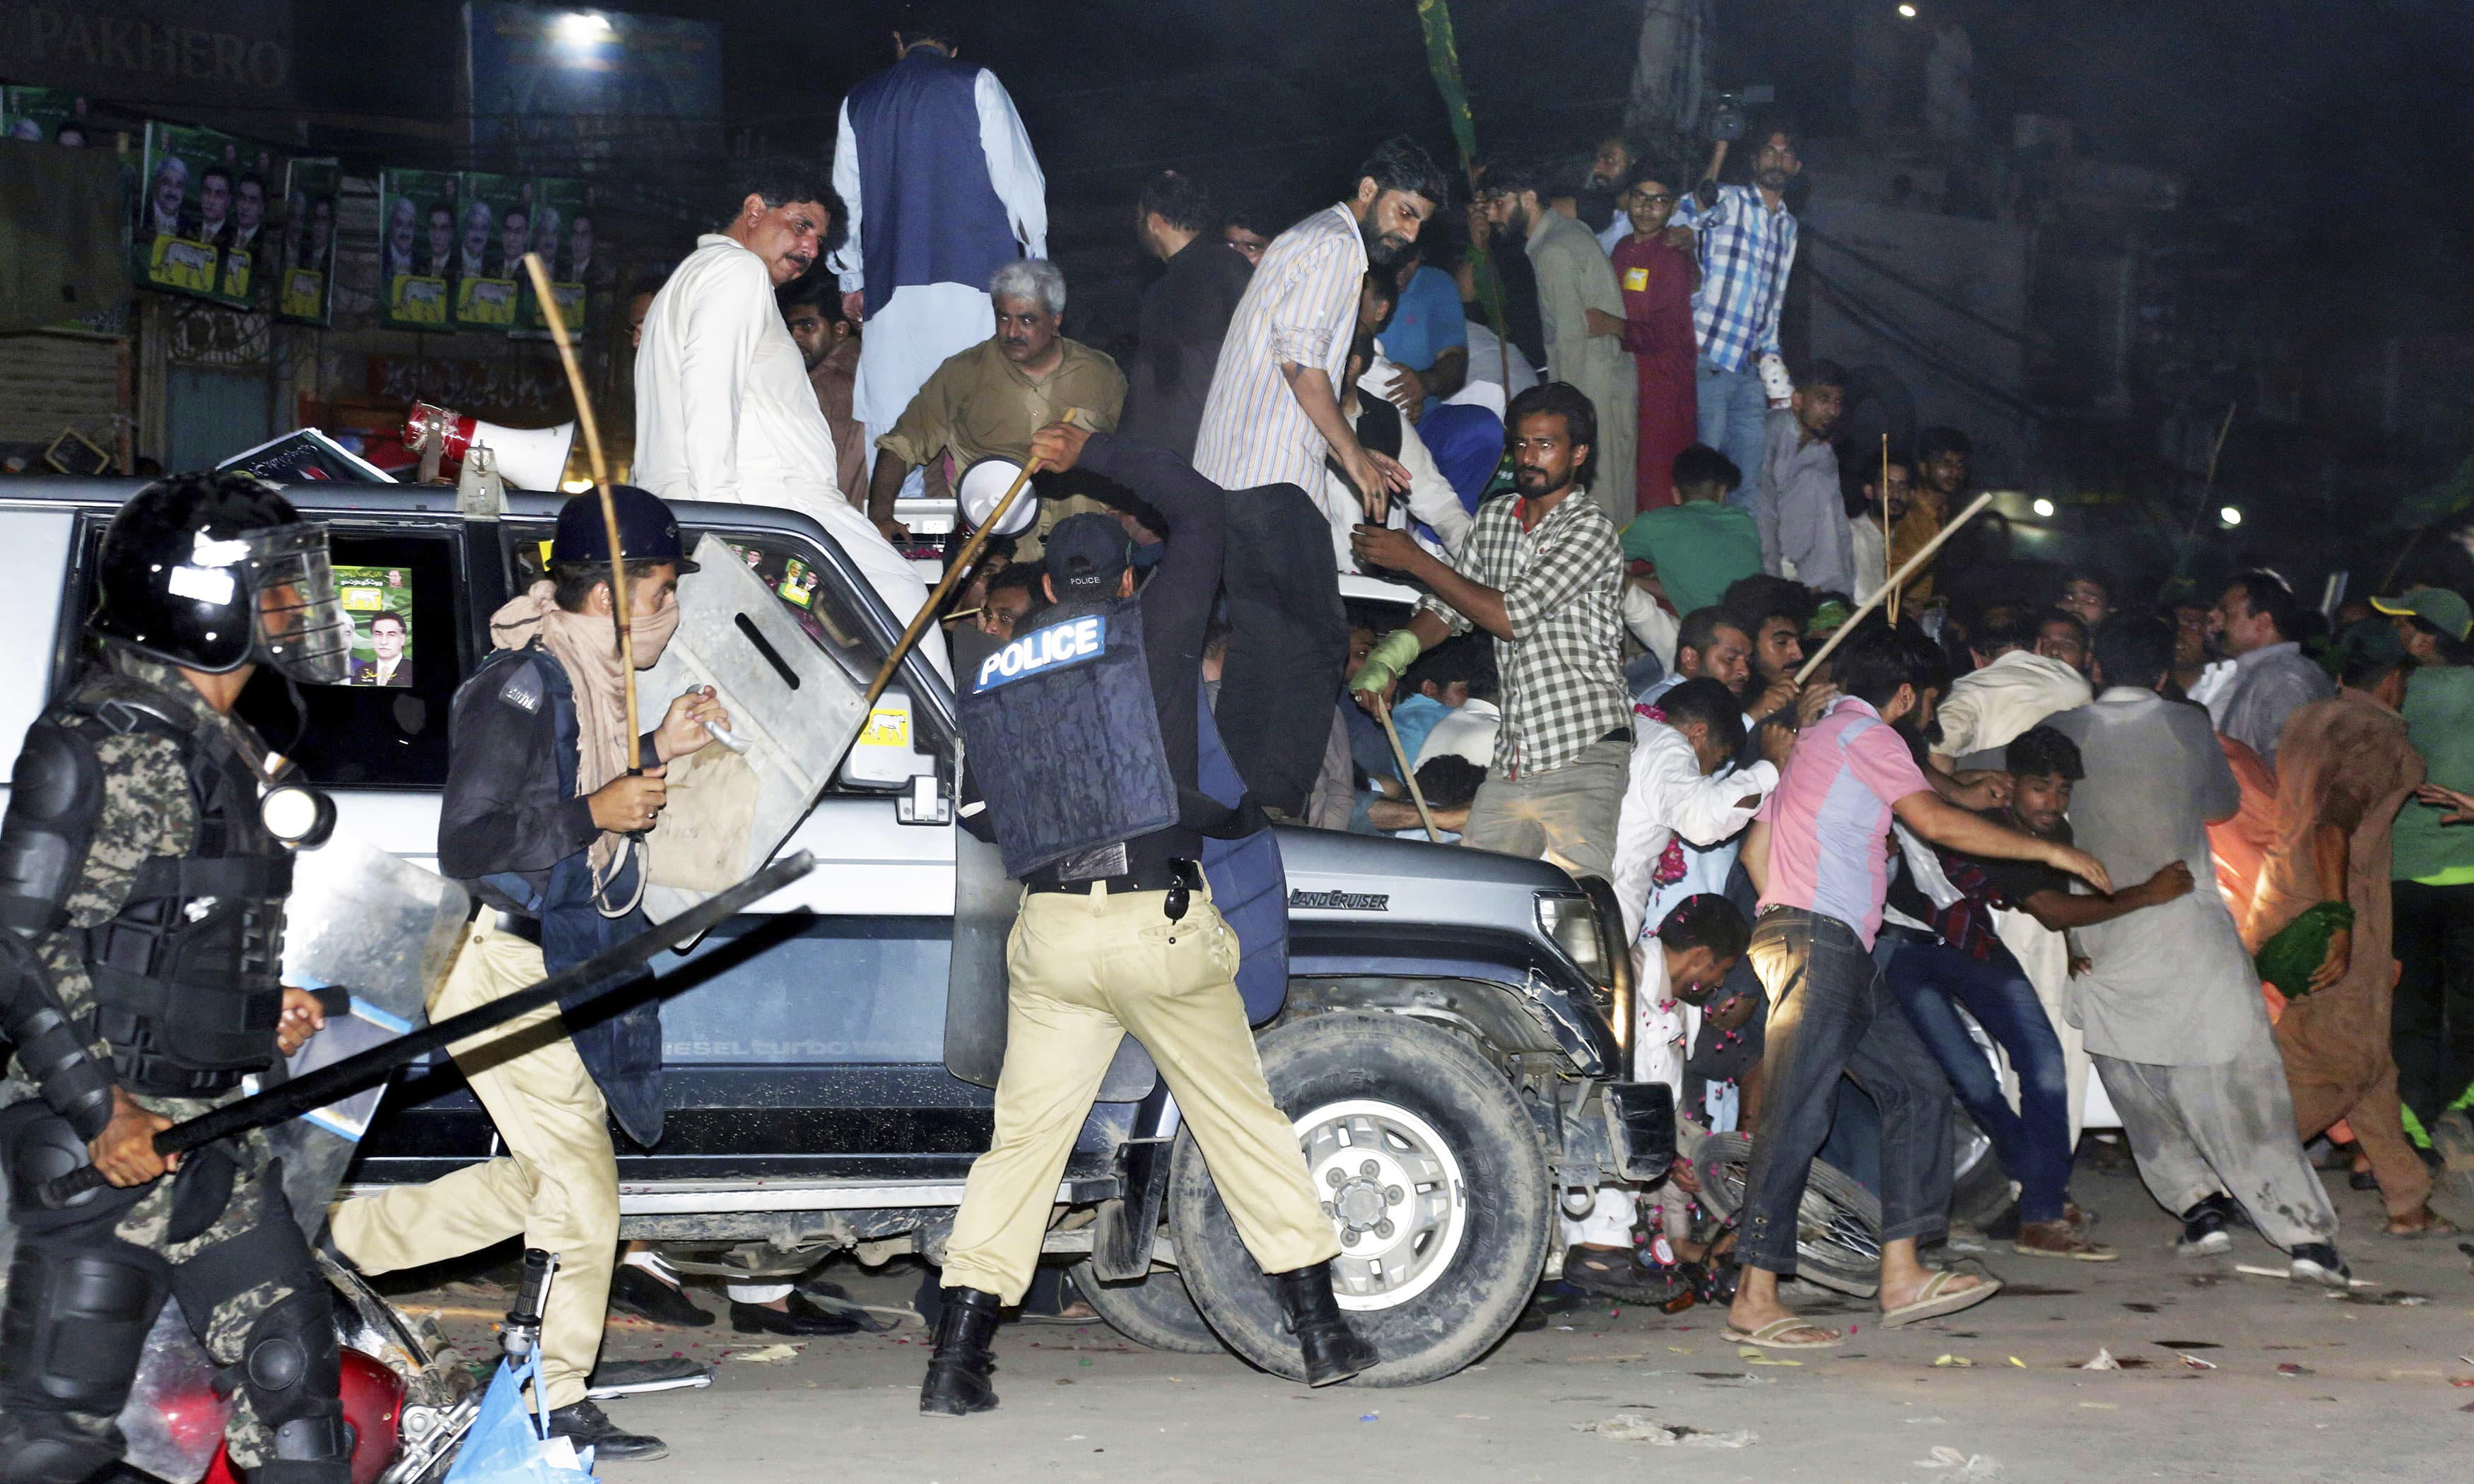 Police use force to disperse supporters of former prime minister Nawaz Sharif who gathered to see him in Lahore. —AP